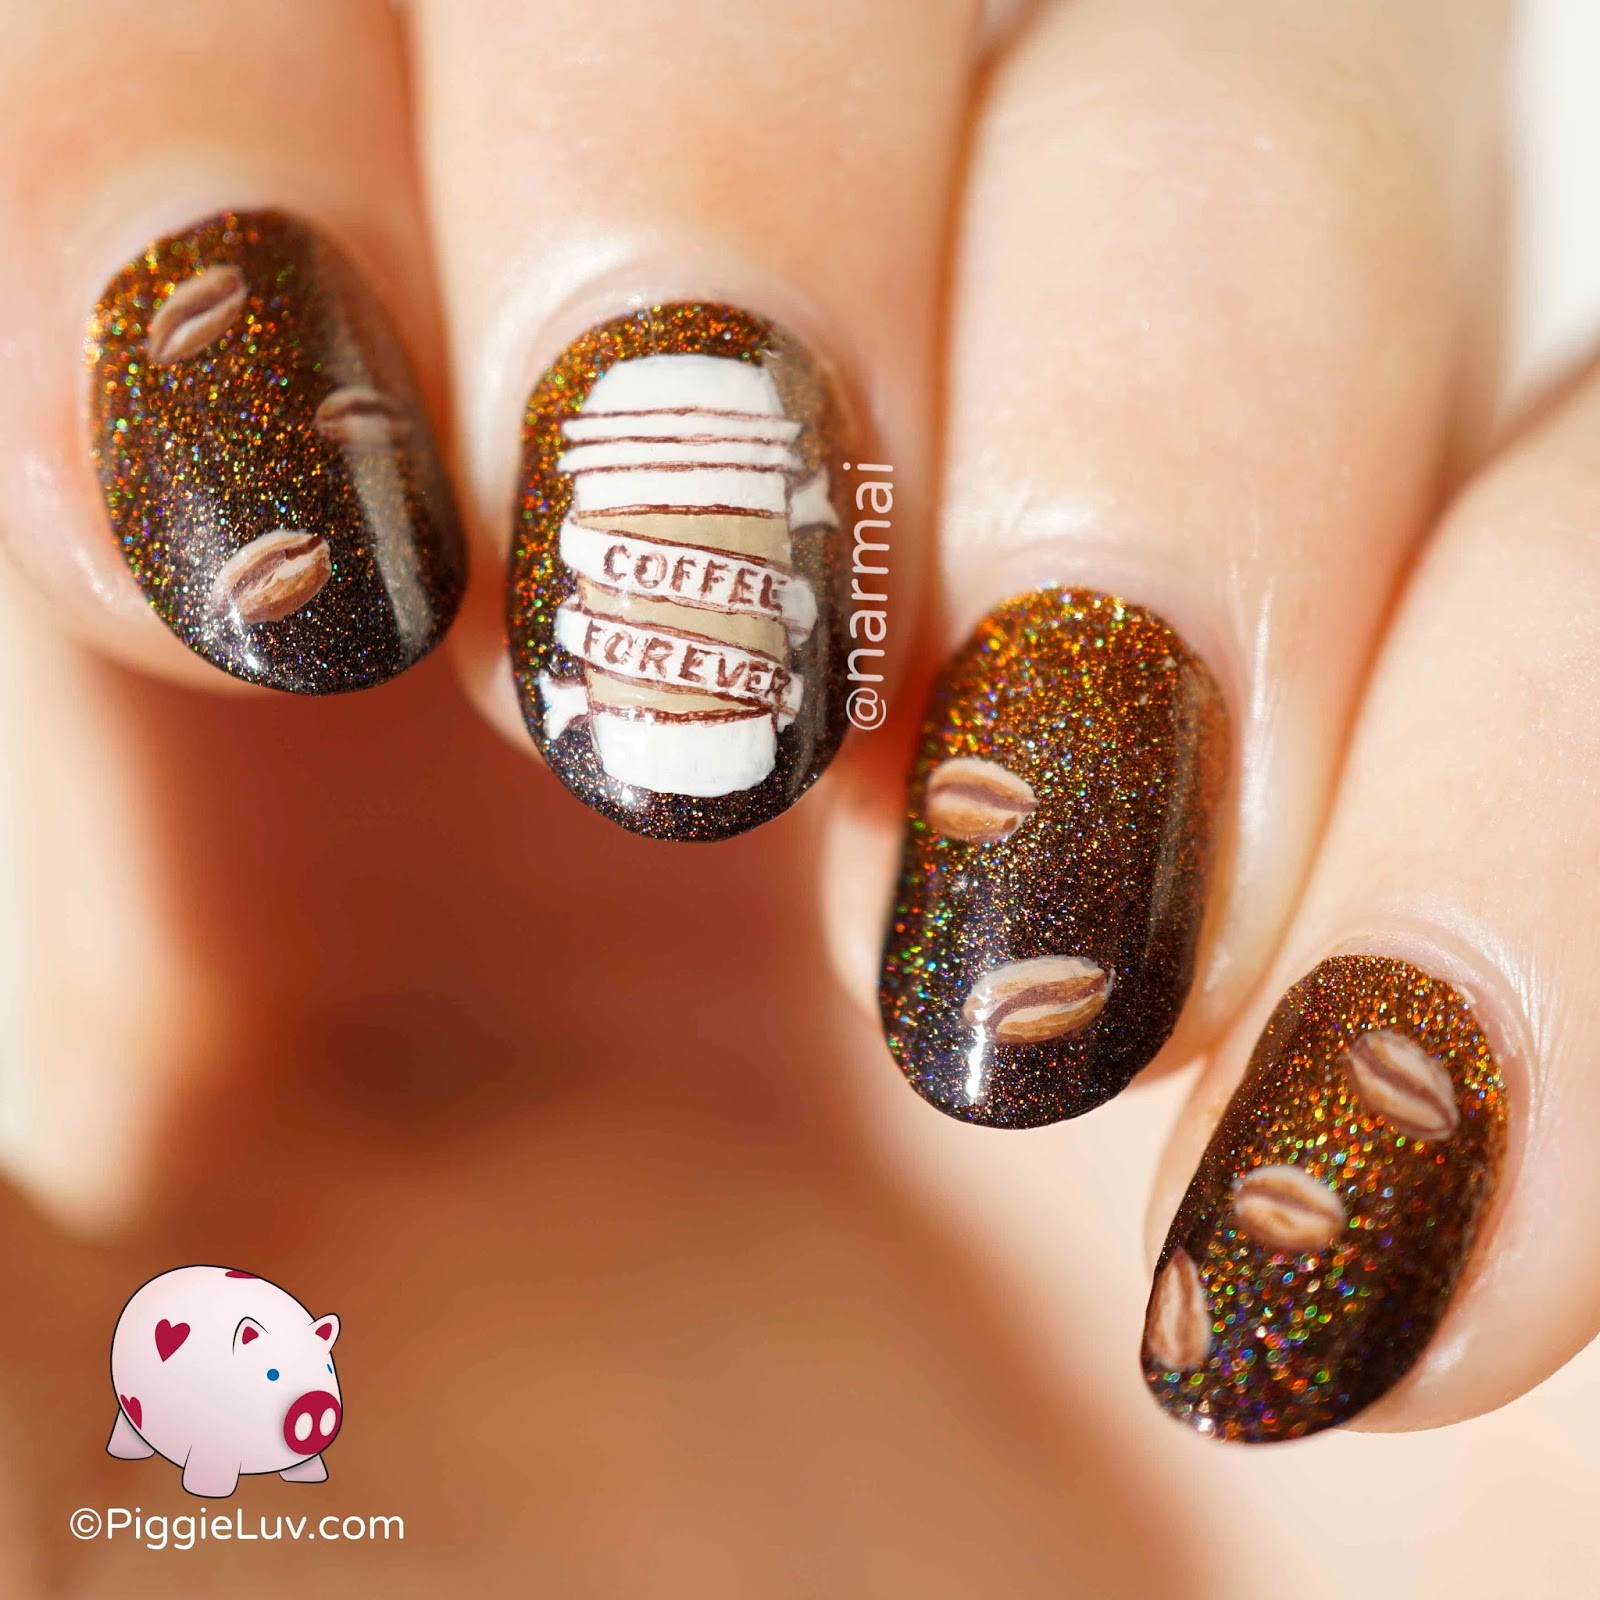 Coffee Art Nails Piggieluv Coffee Forever Nail Art